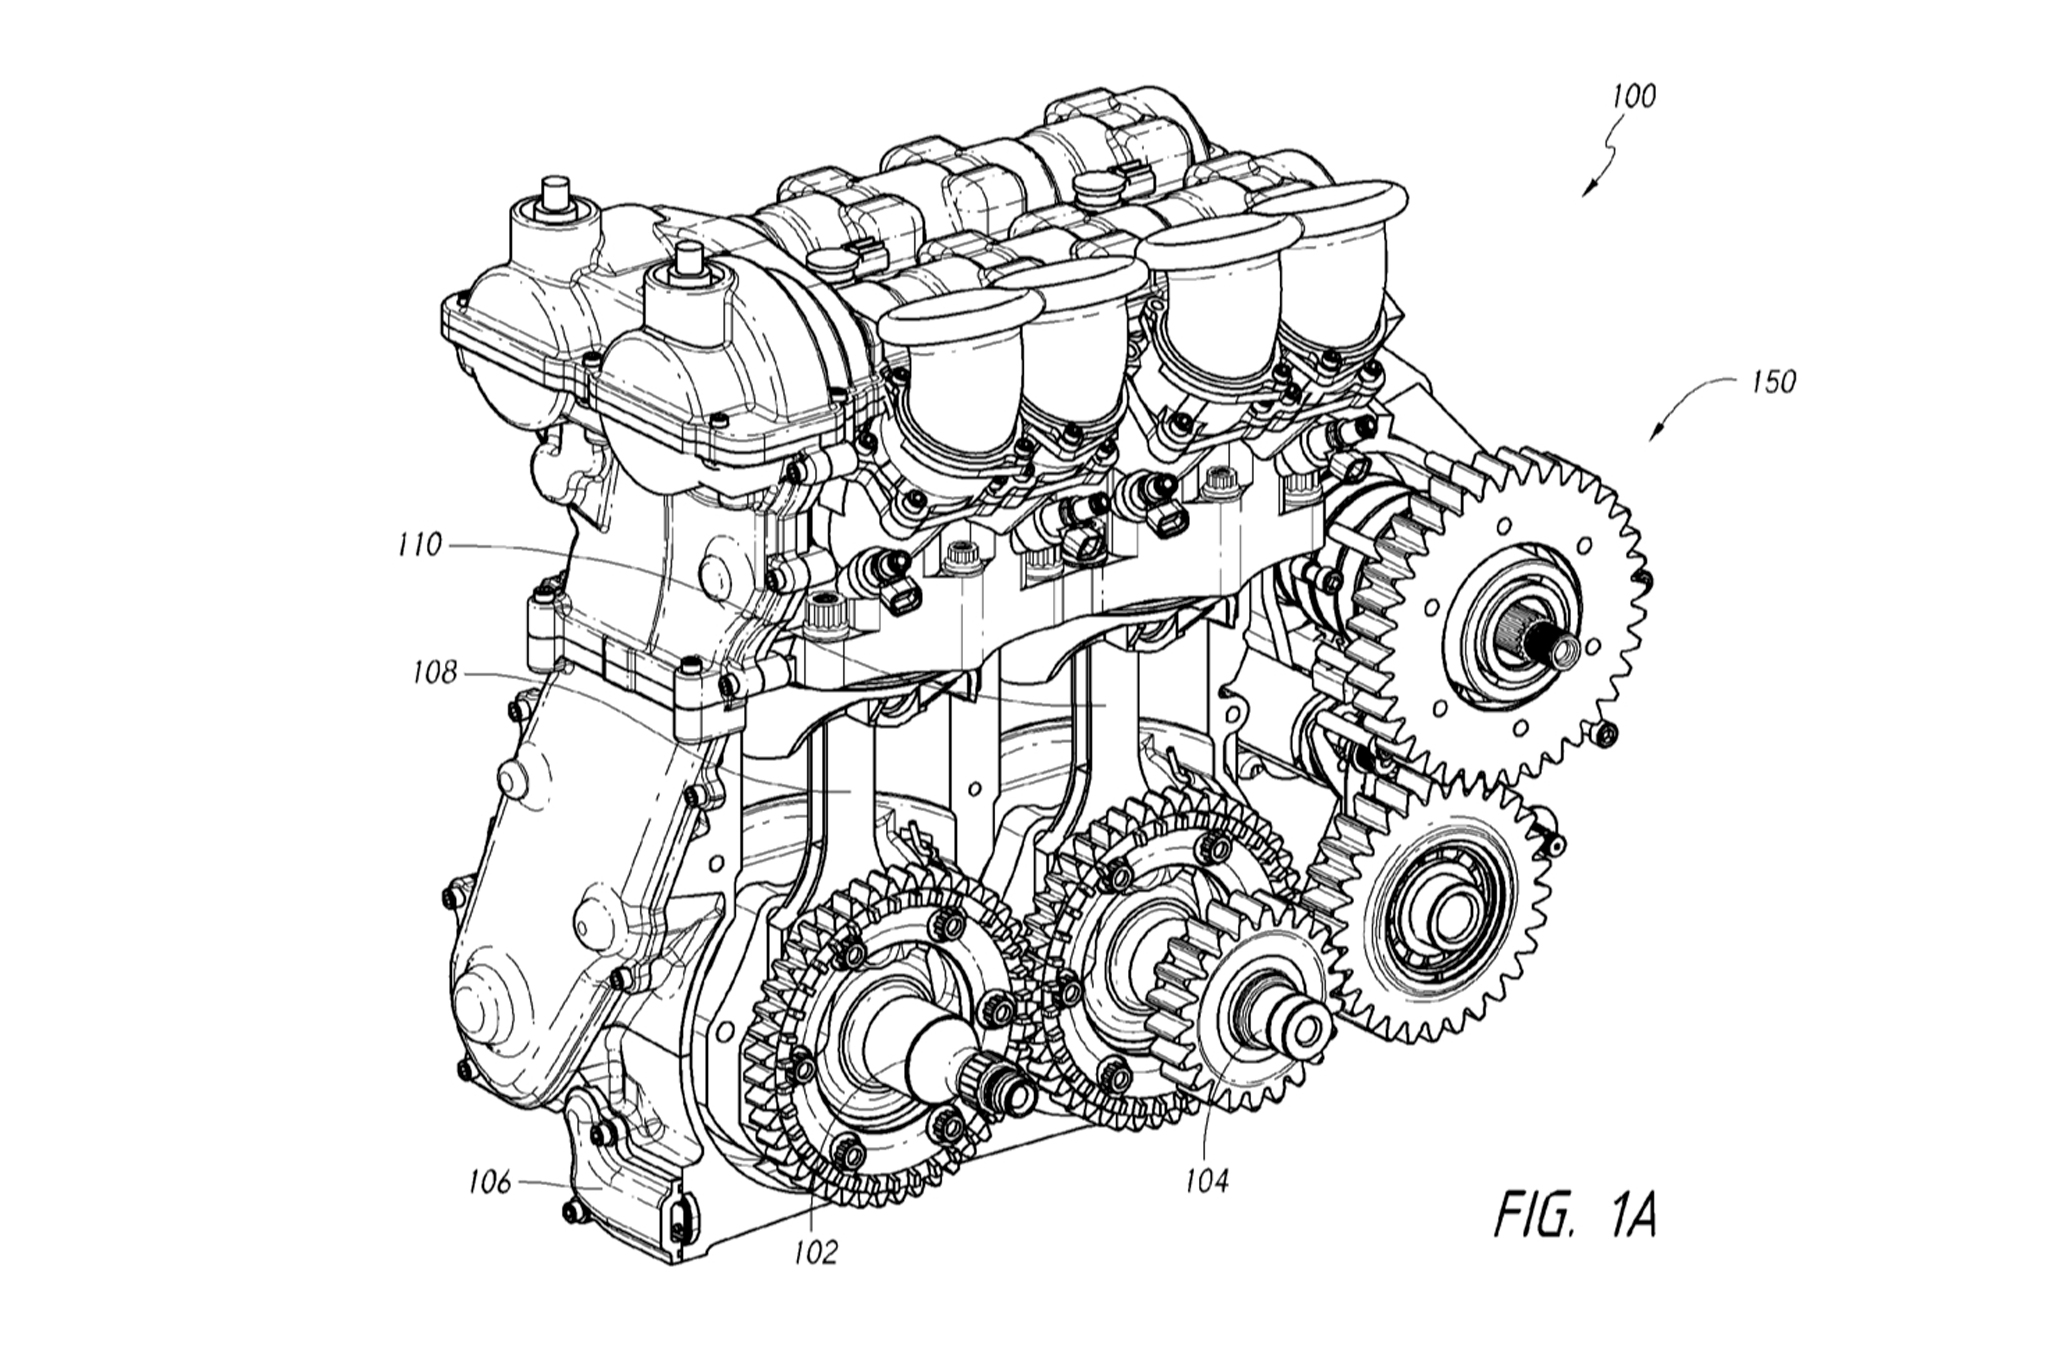 Racing Legend Dan Gurney Patents New Internal Combustion